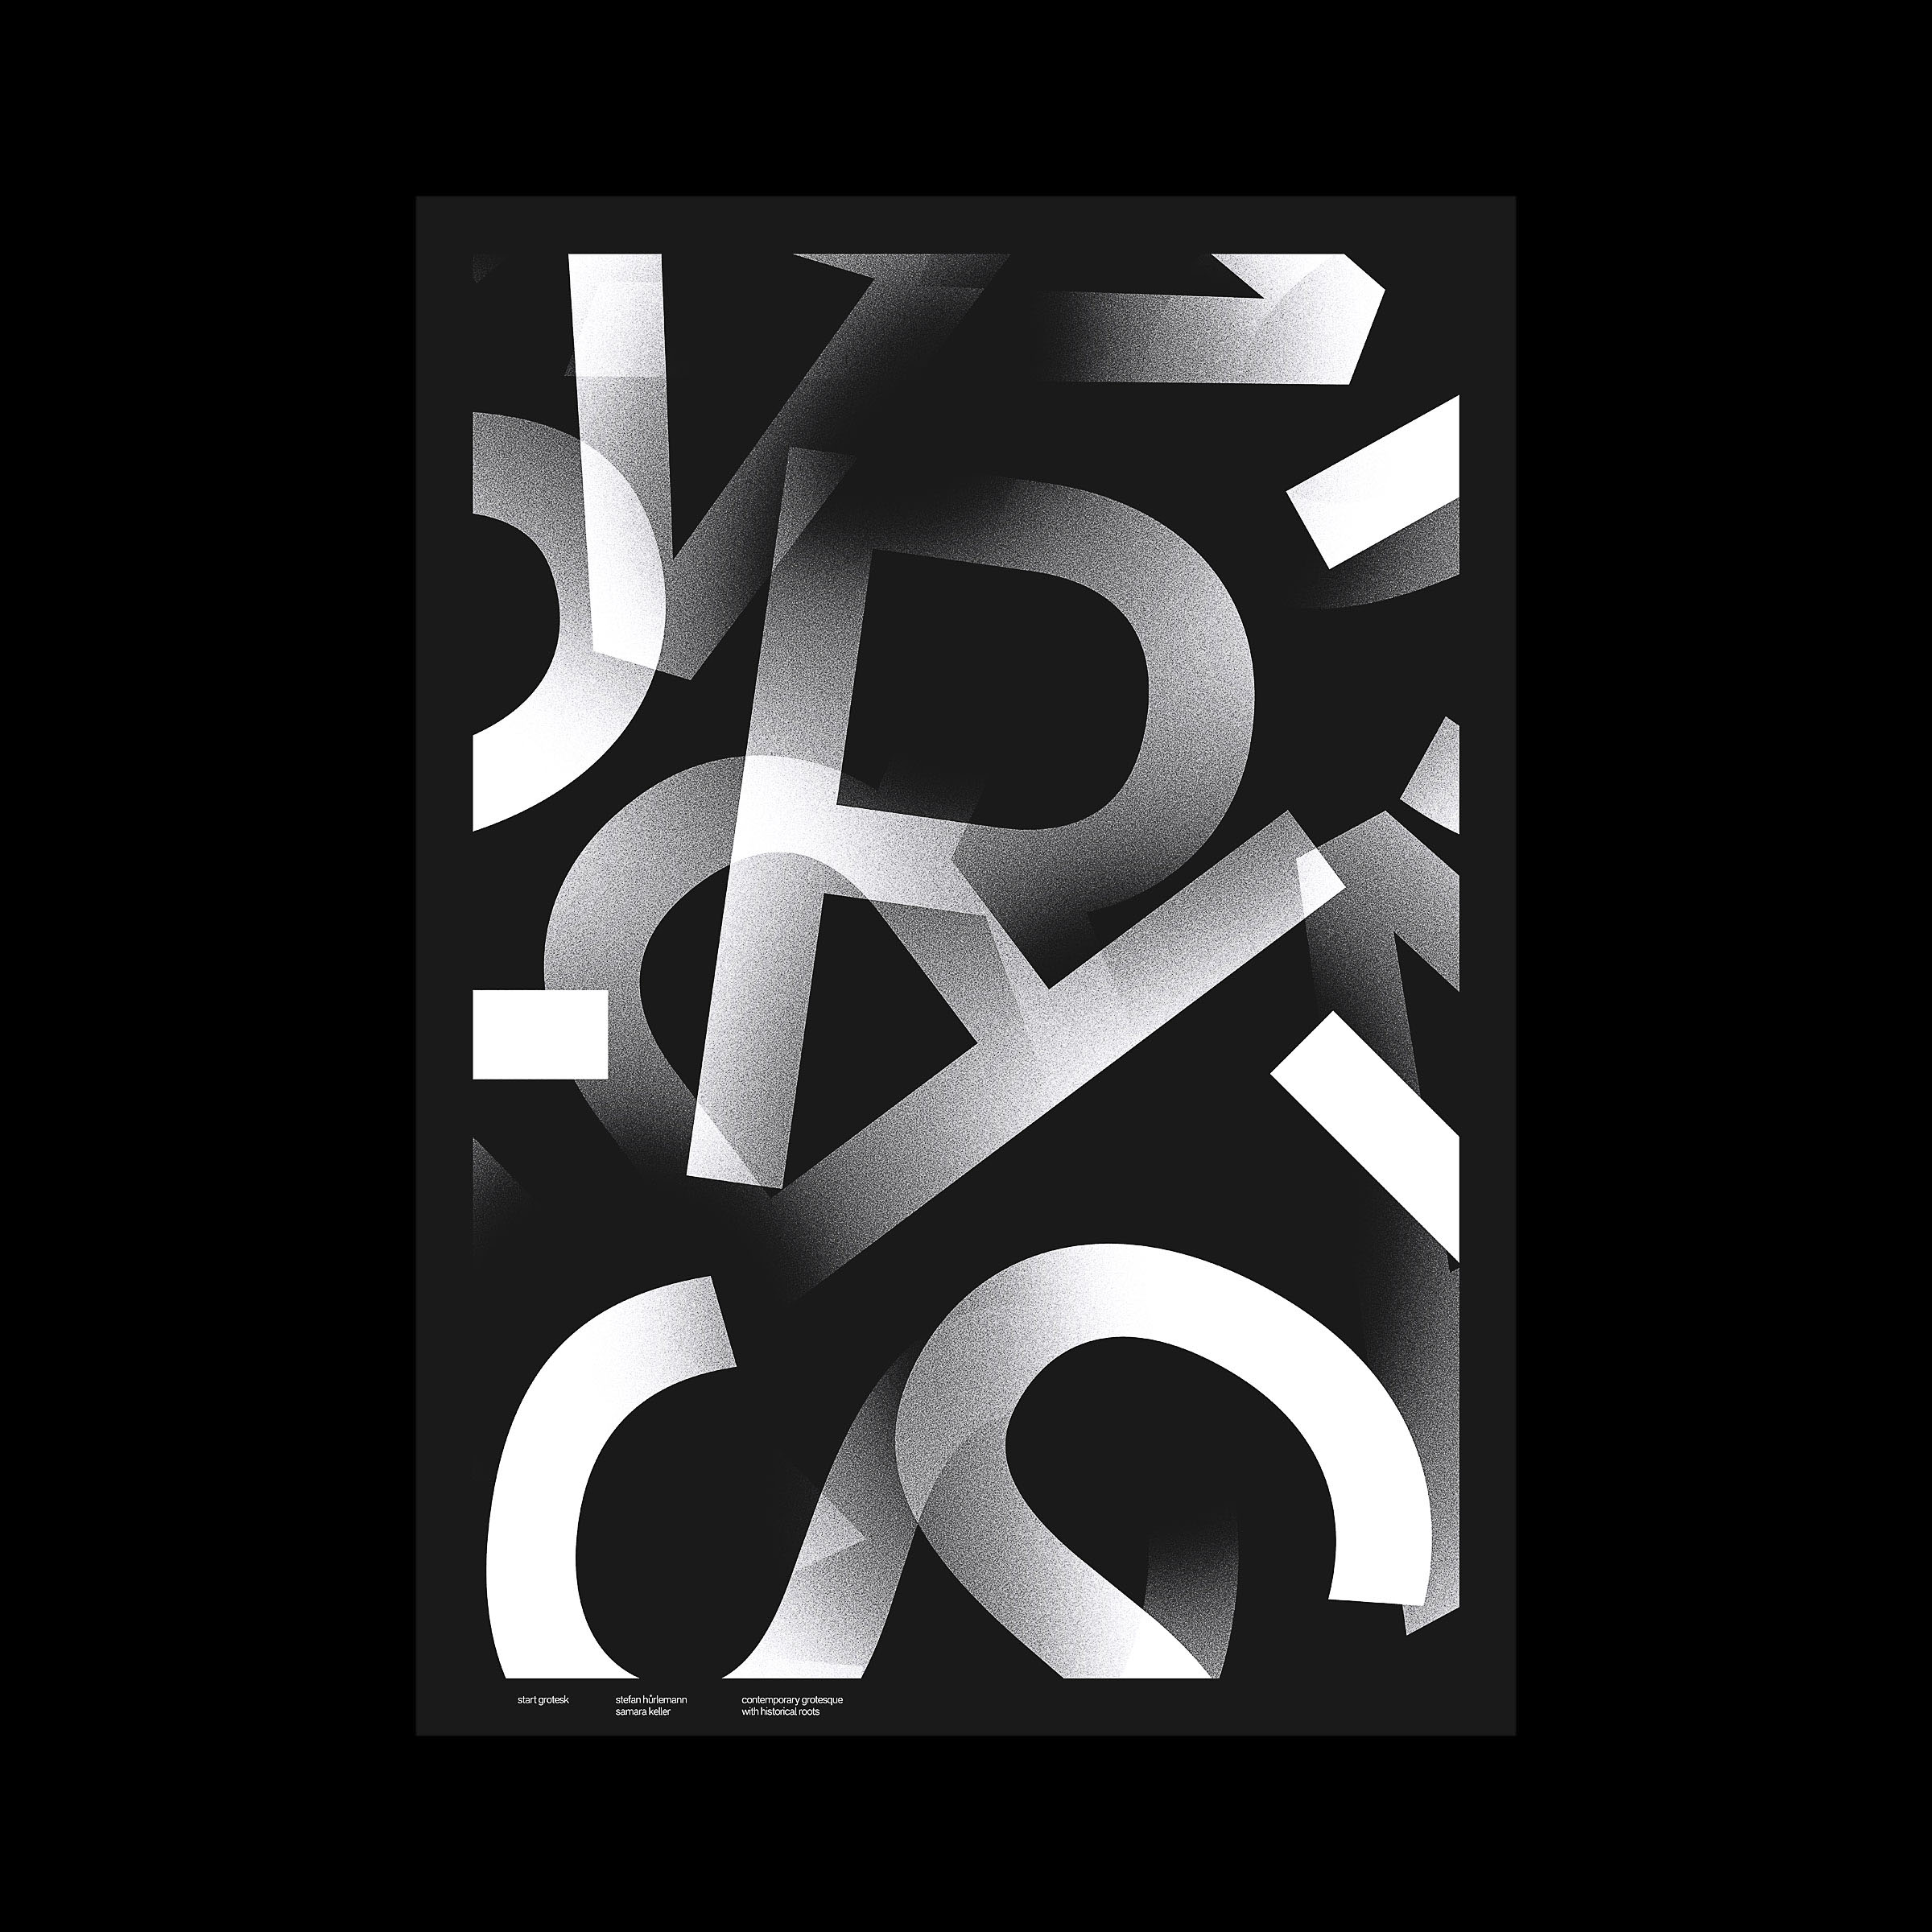 Black Typography Posters 2017 on Behance